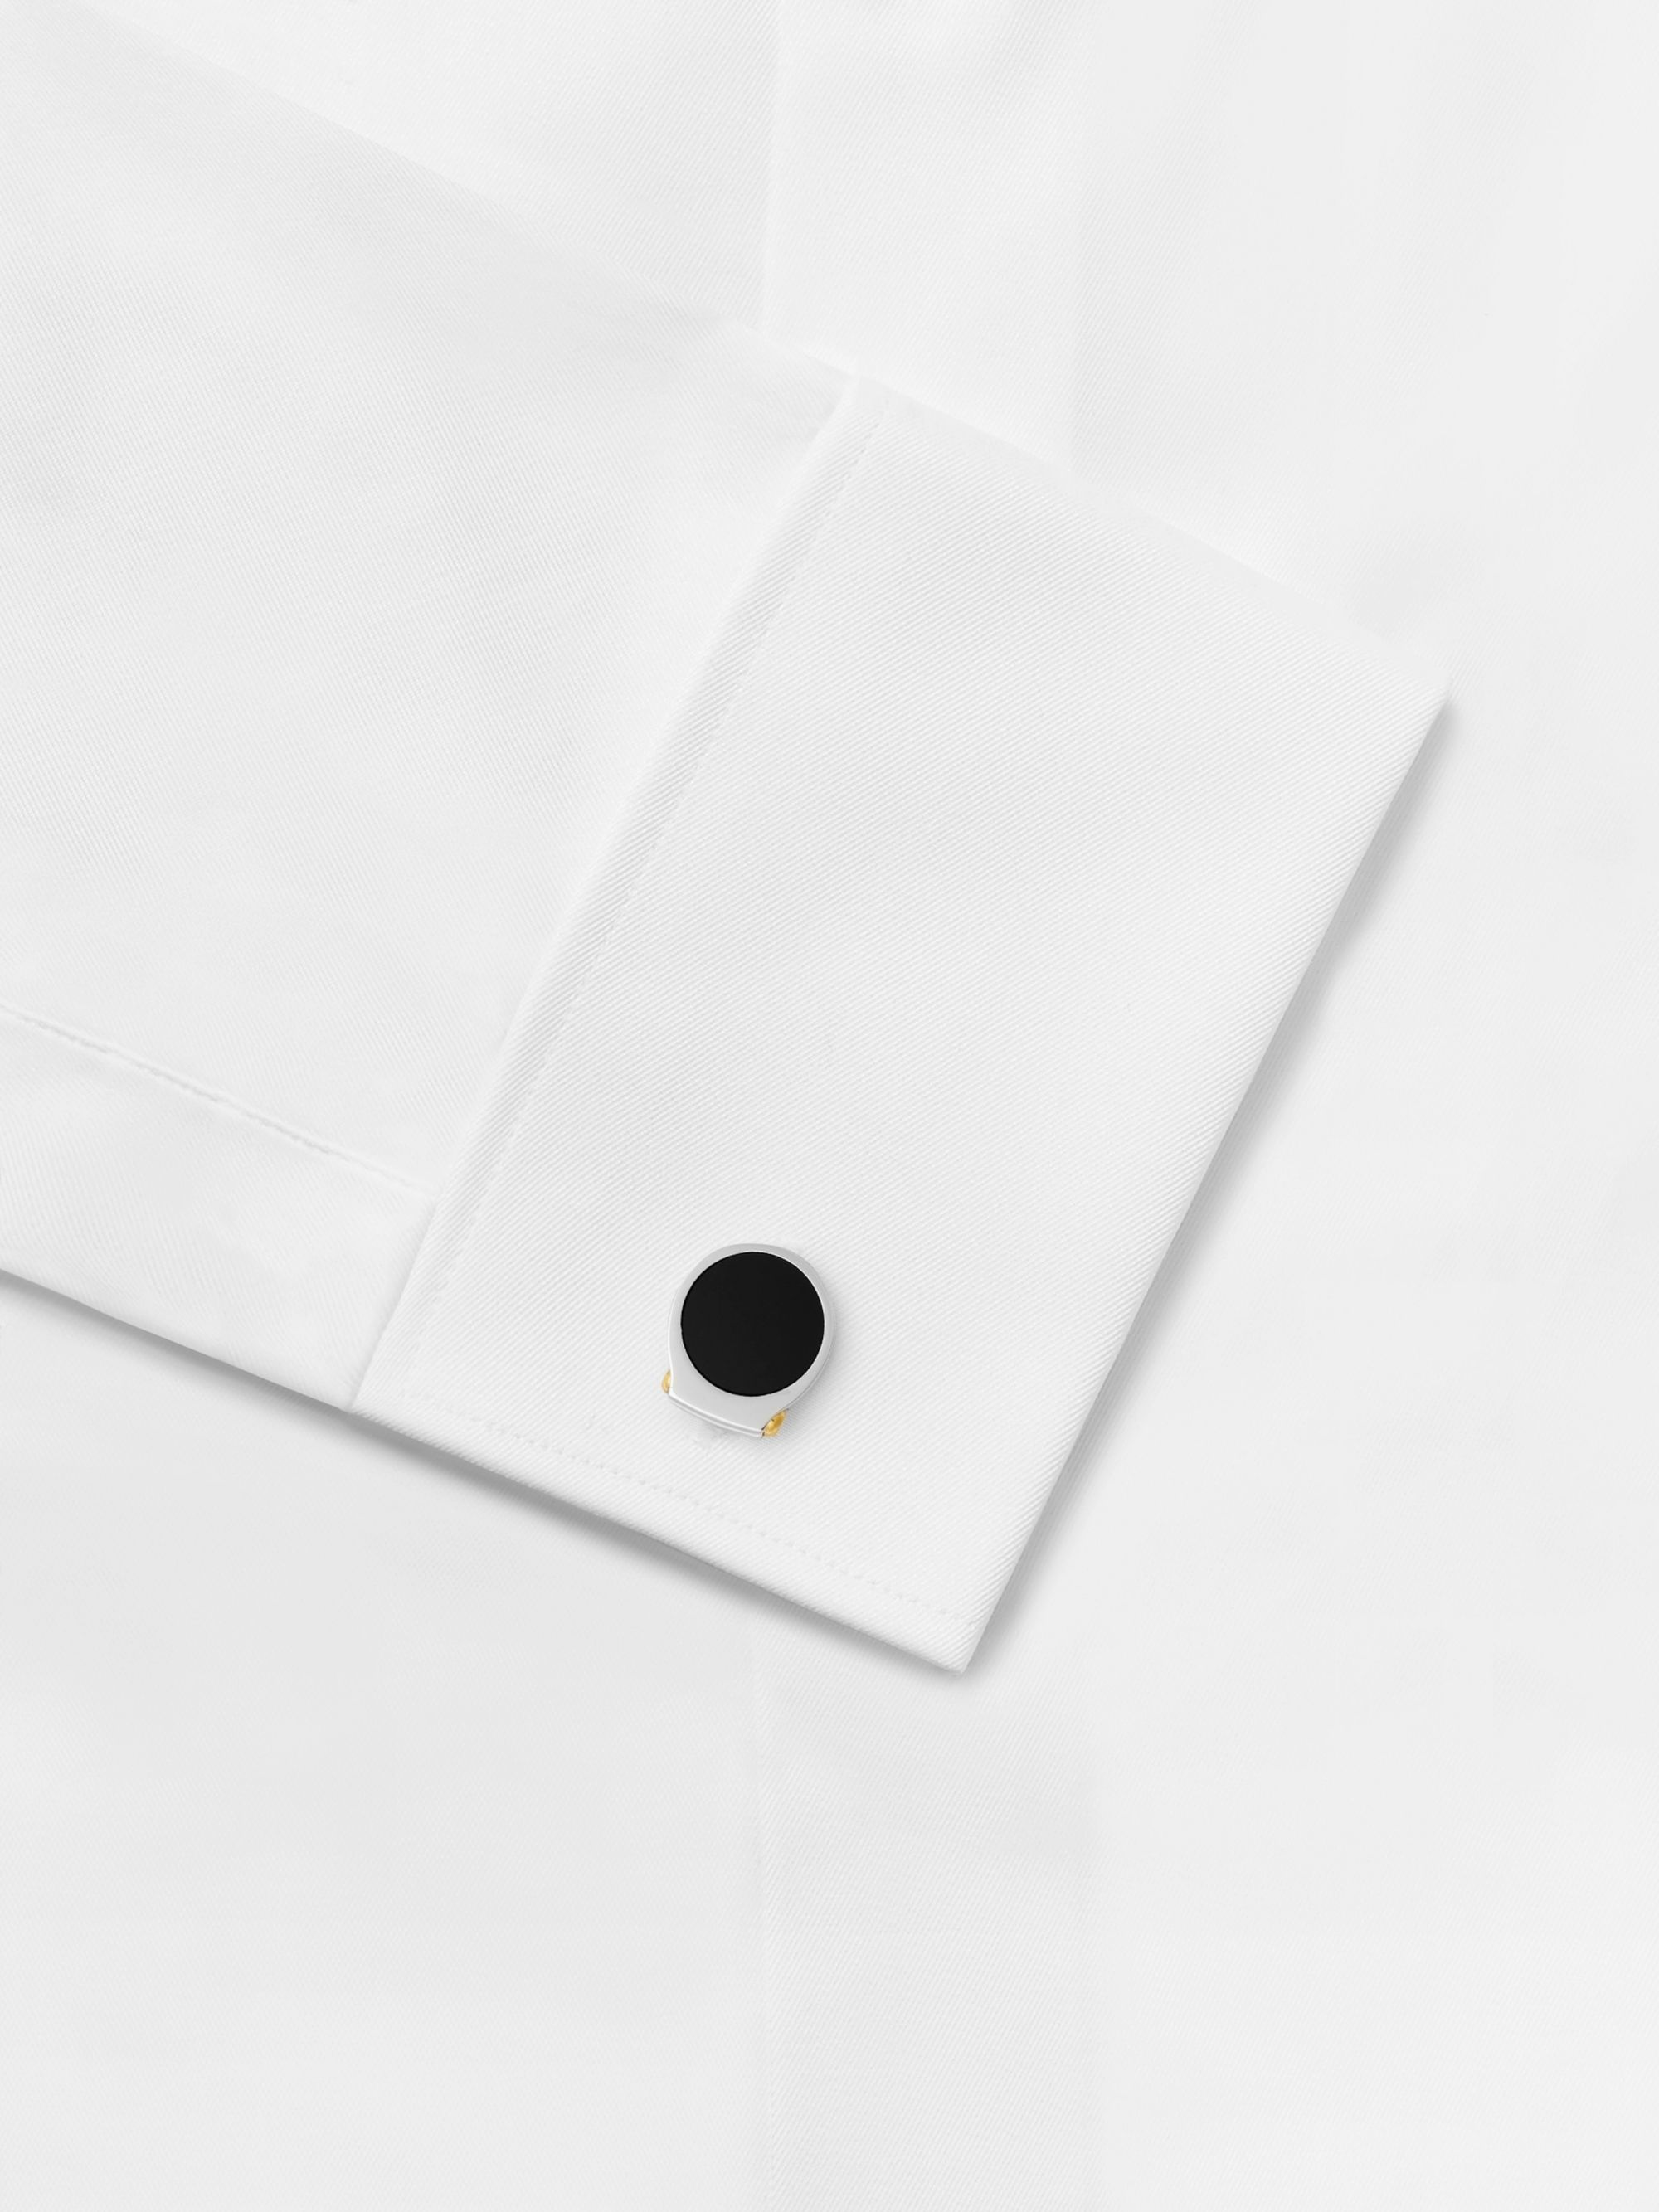 Dunhill Rhodium-Plated and Onyx Cufflinks